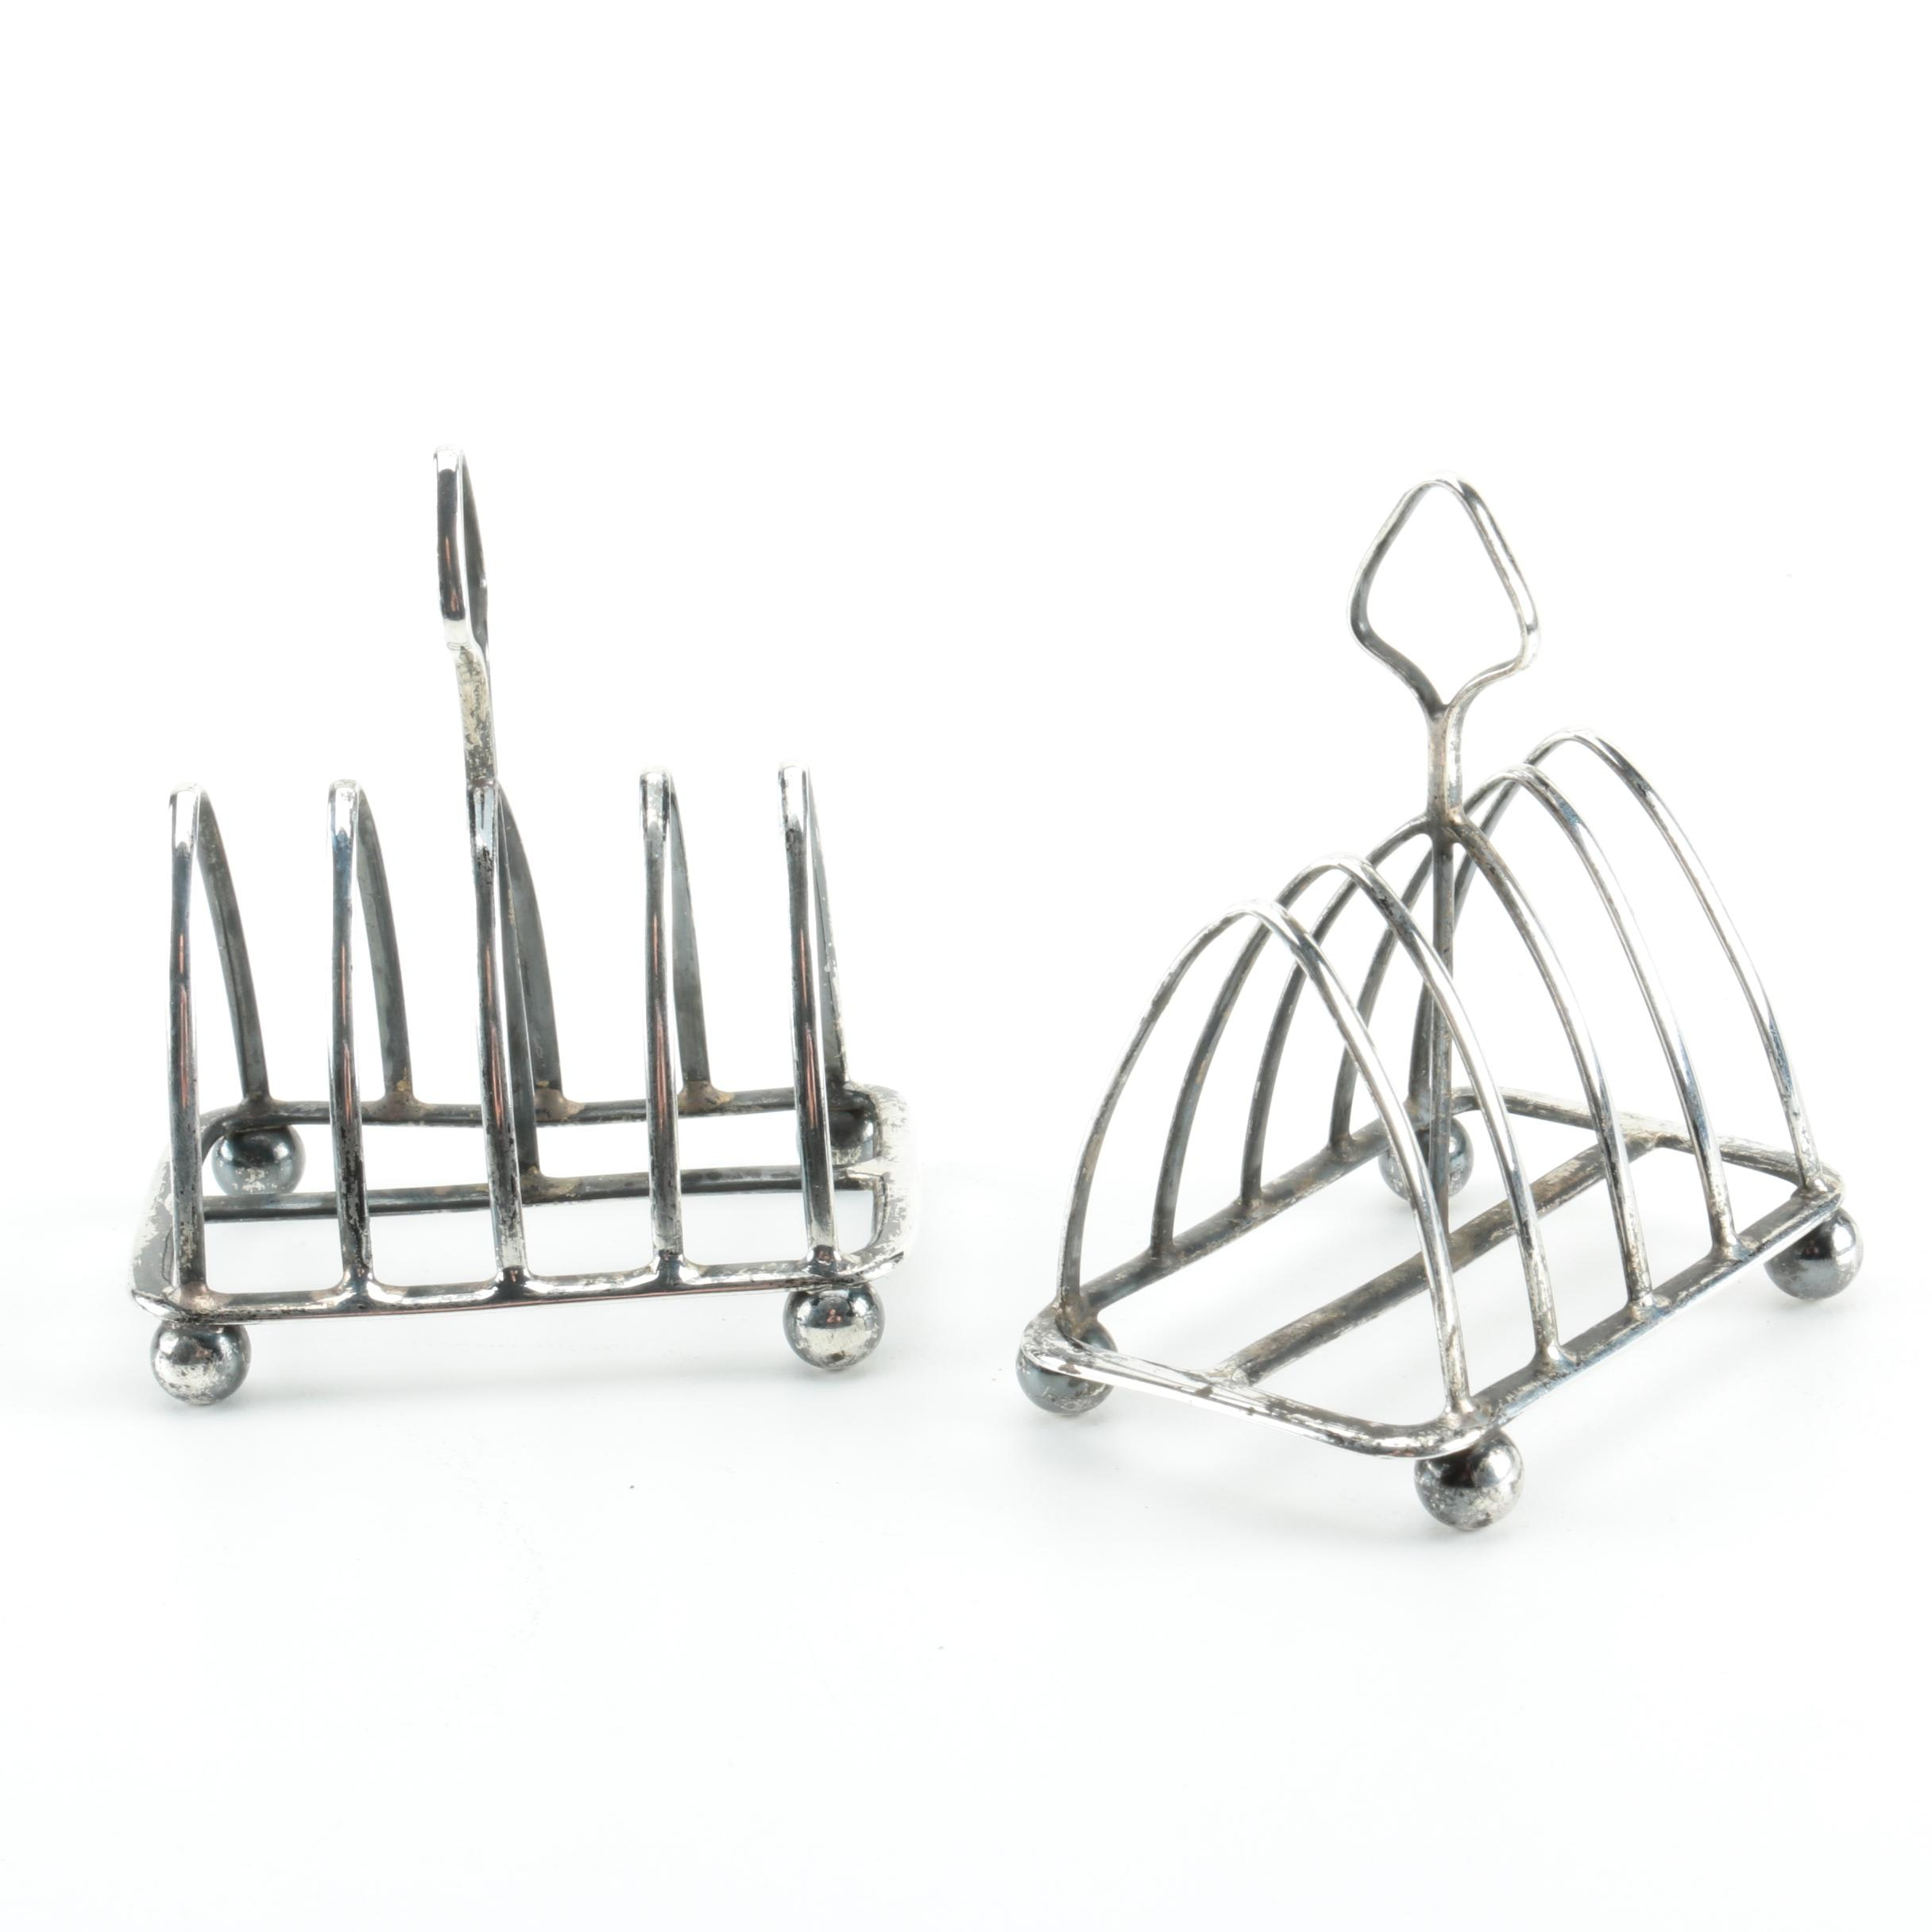 Pair of 1928 Goldsmiths & Silversmiths Co. Ltd. Sterling Silver Toast Racks